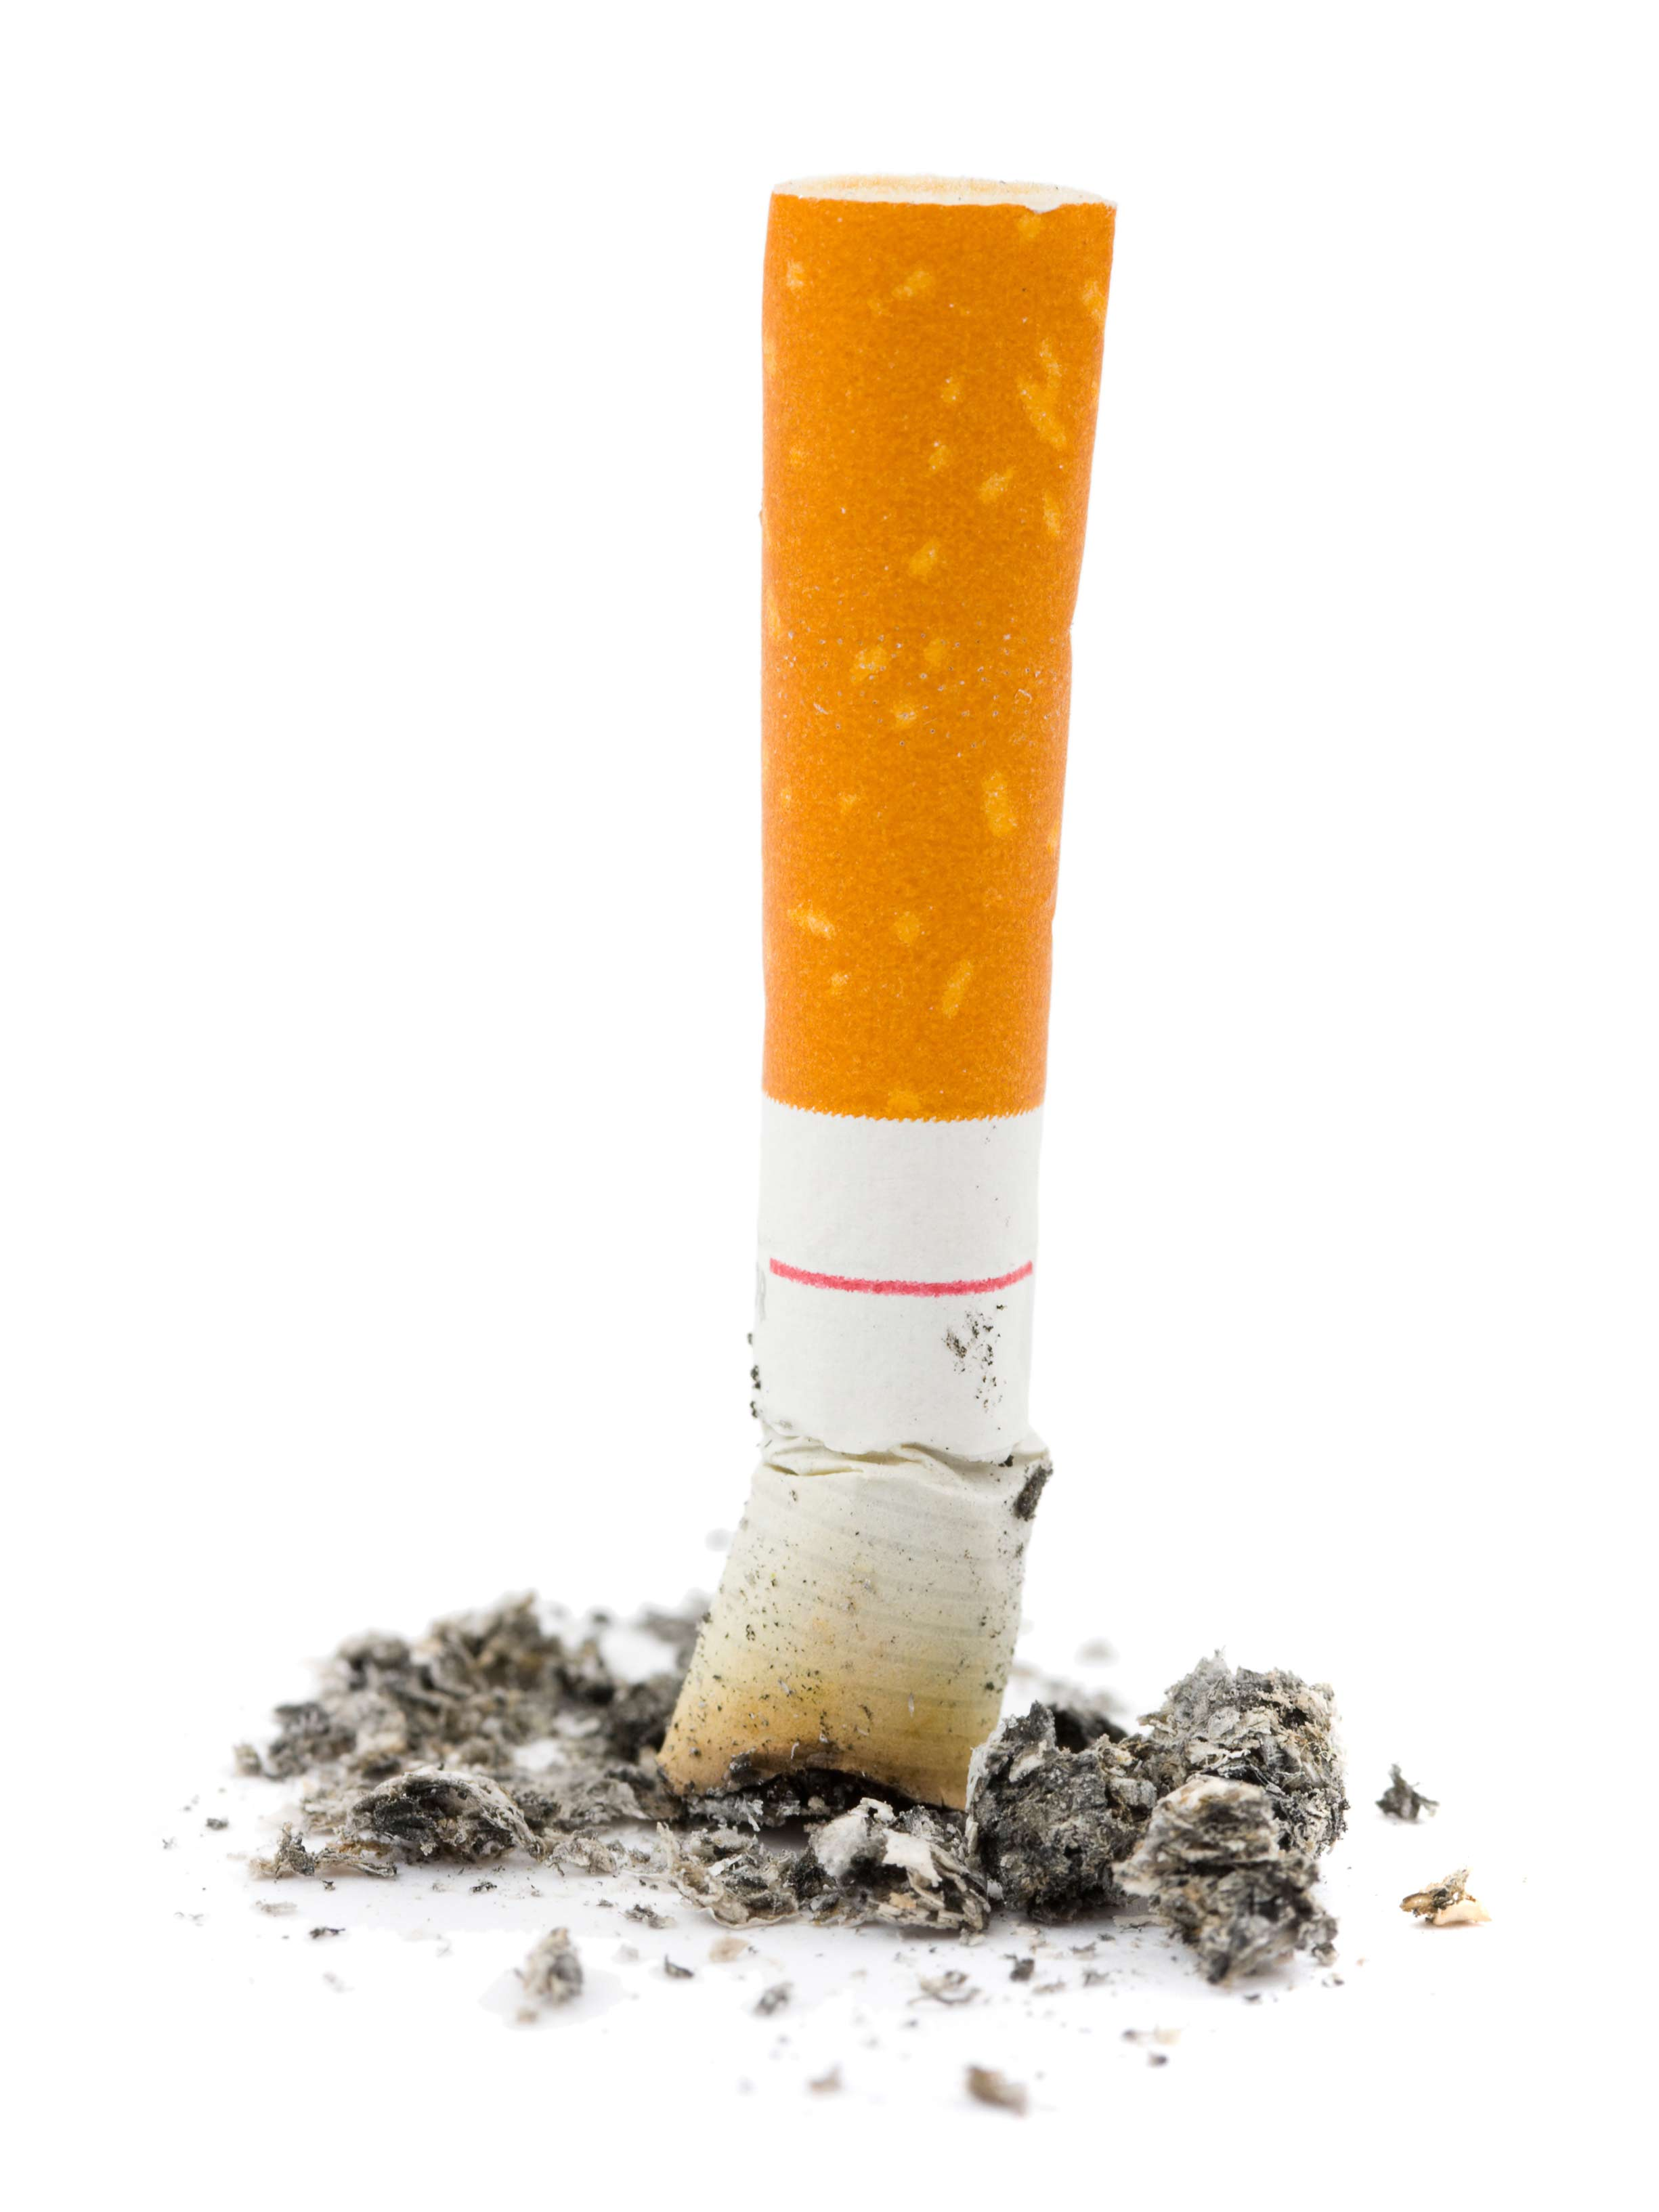 how to get free tobacco